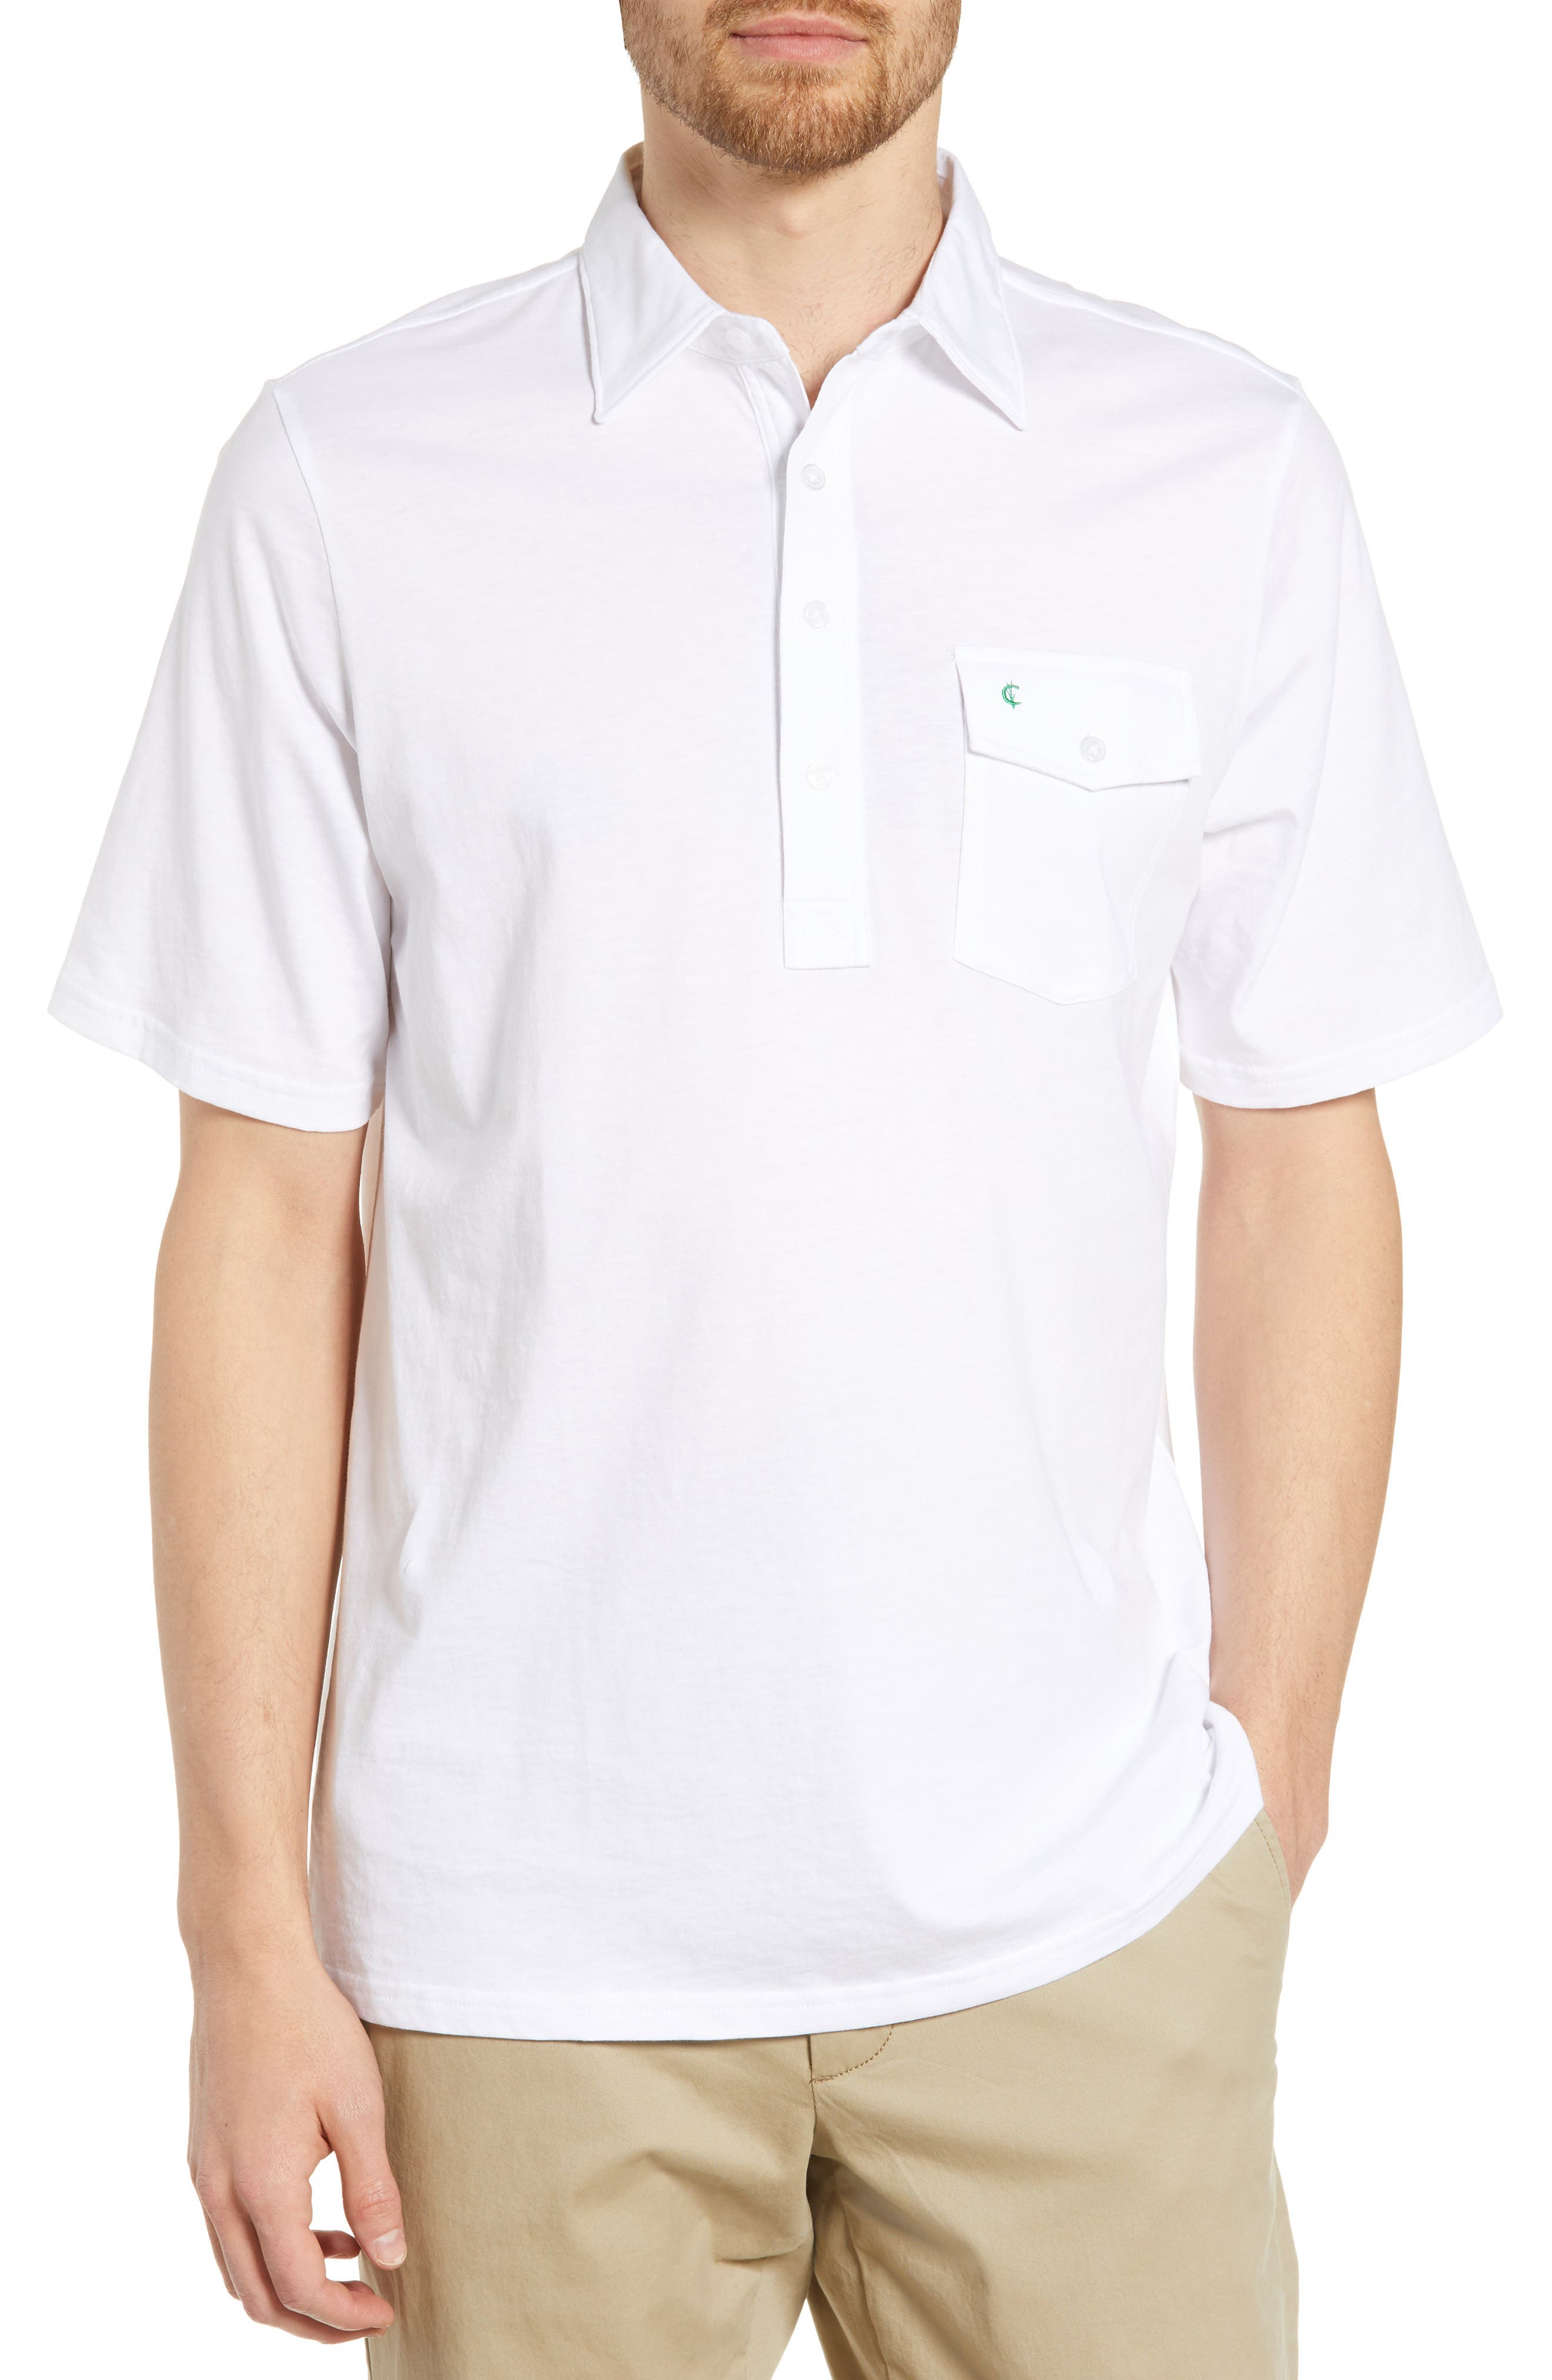 CRIQUET Regular Fit Players Jersey Polo, Main, color, WHITE